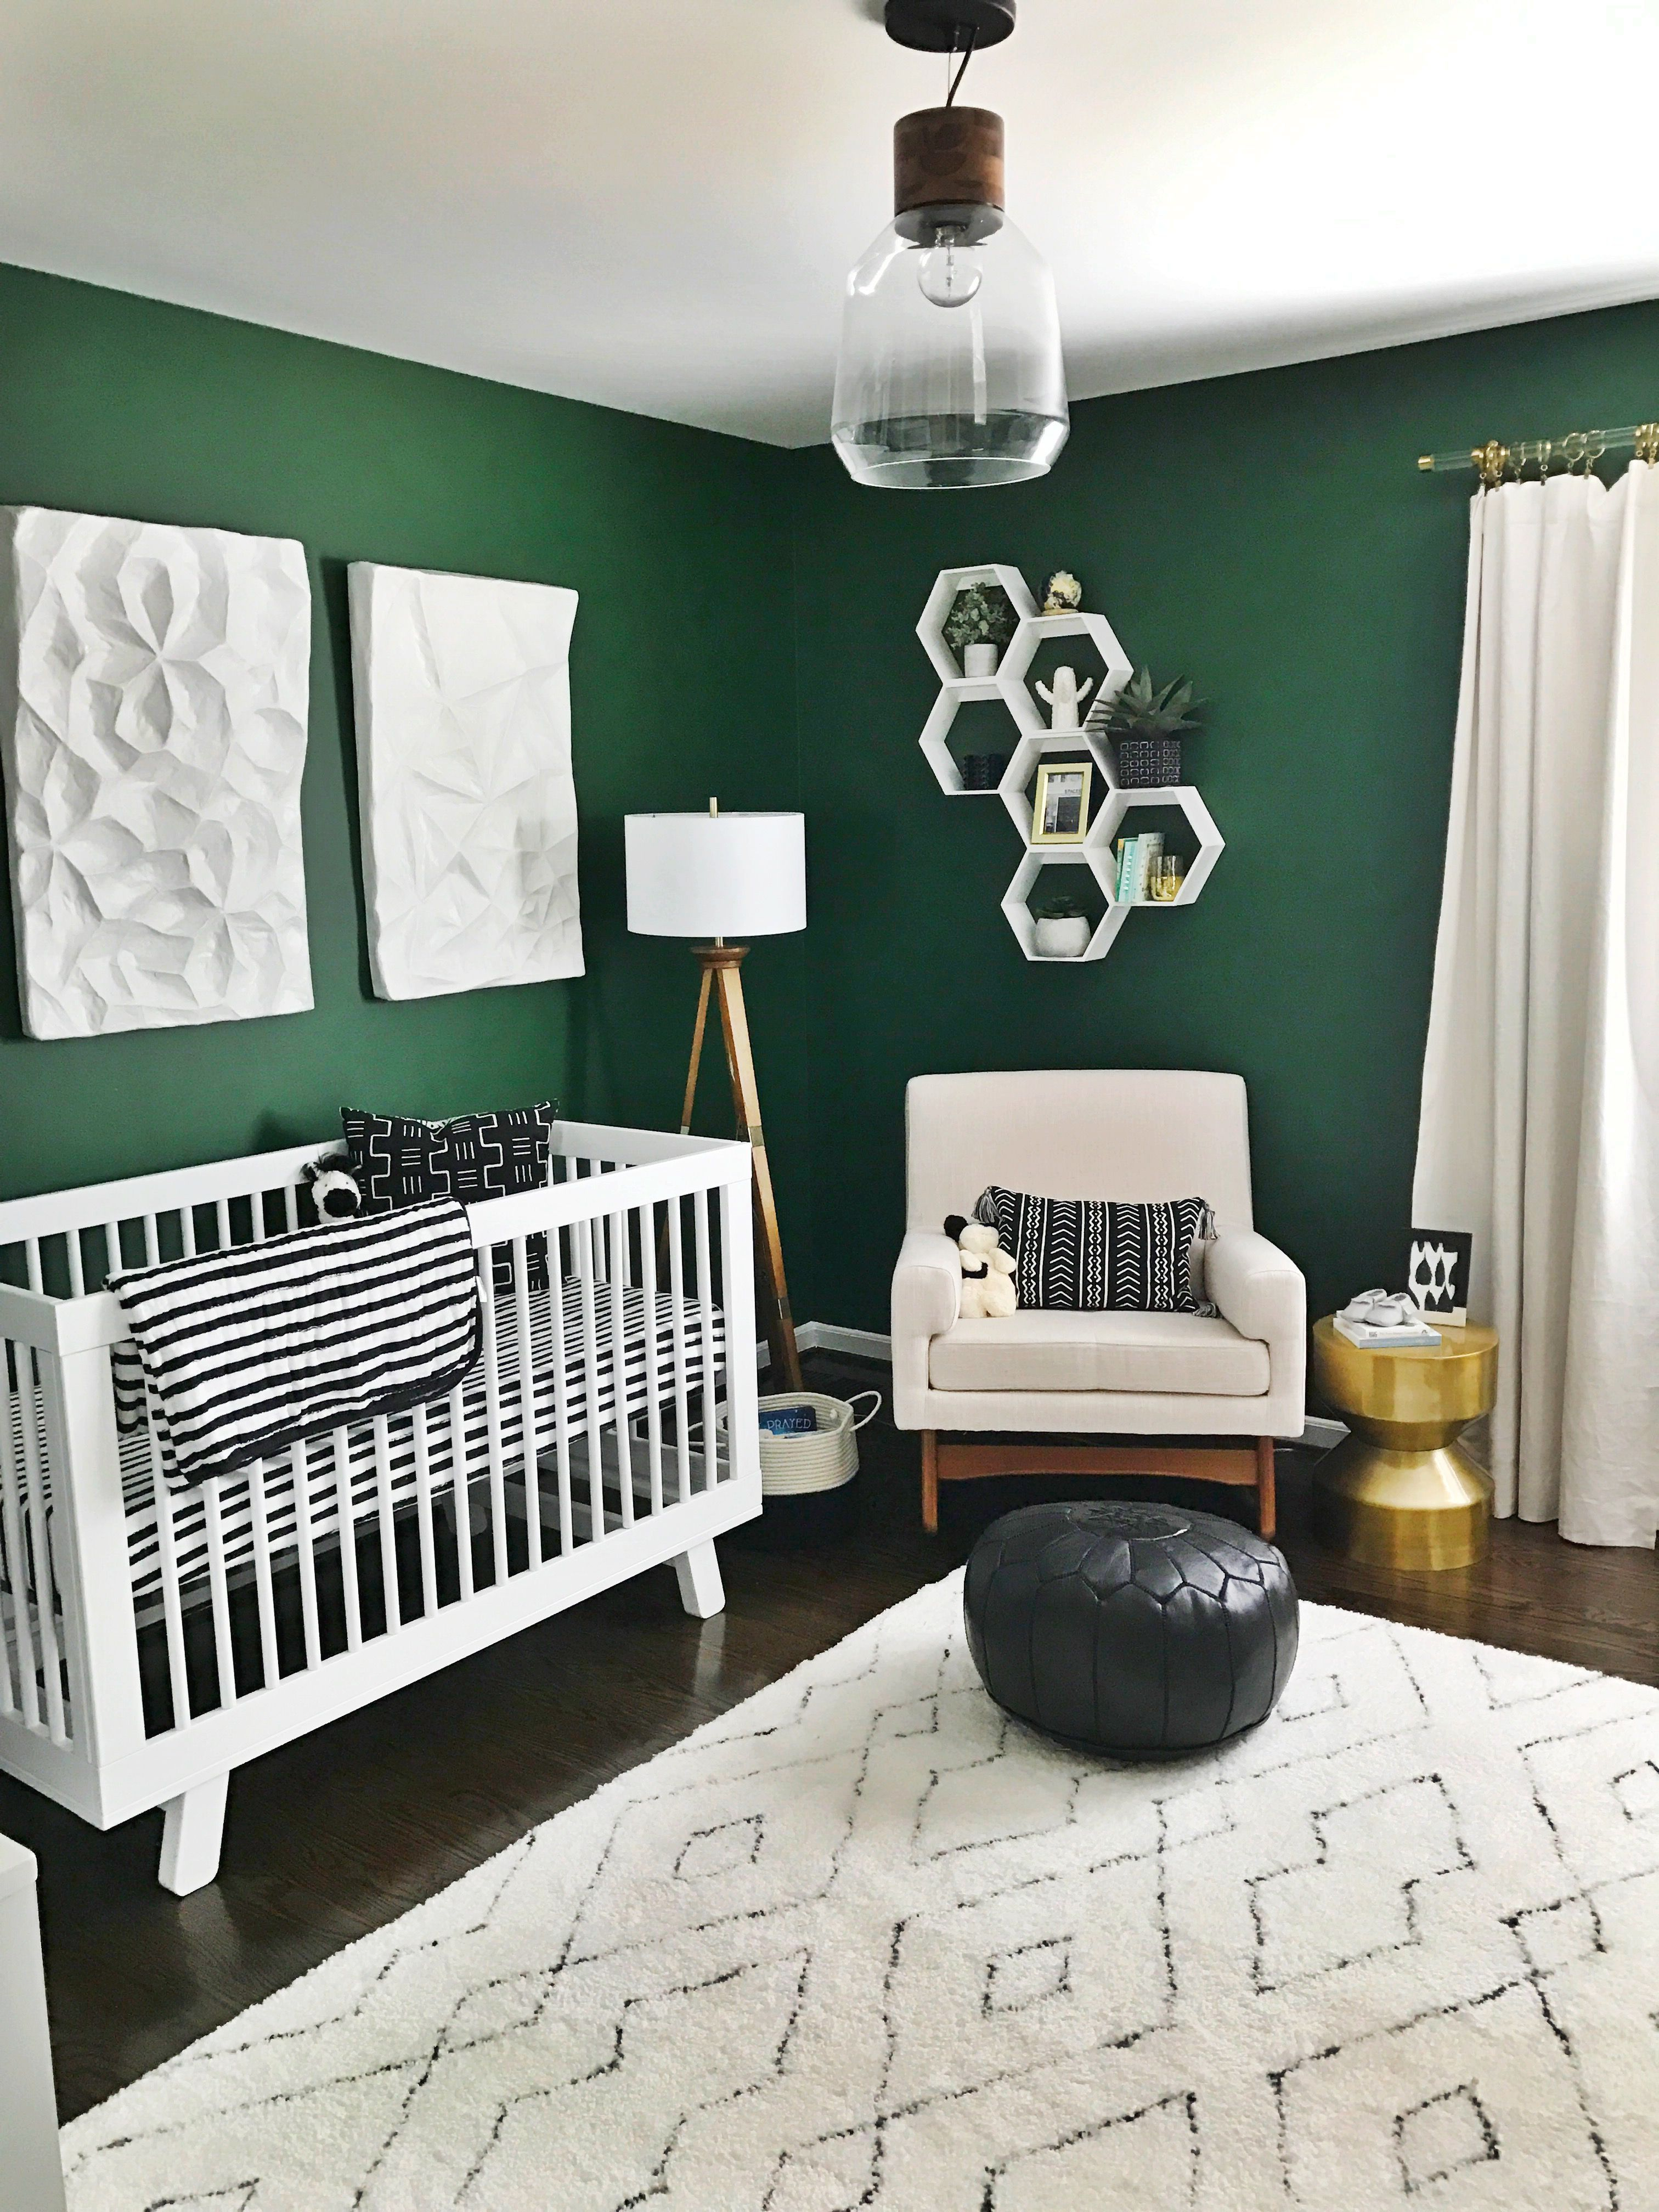 A Green Nursery With Modern Black And White Accents Nursery Baby Room Baby Boy Rooms Green Bedroom Paint